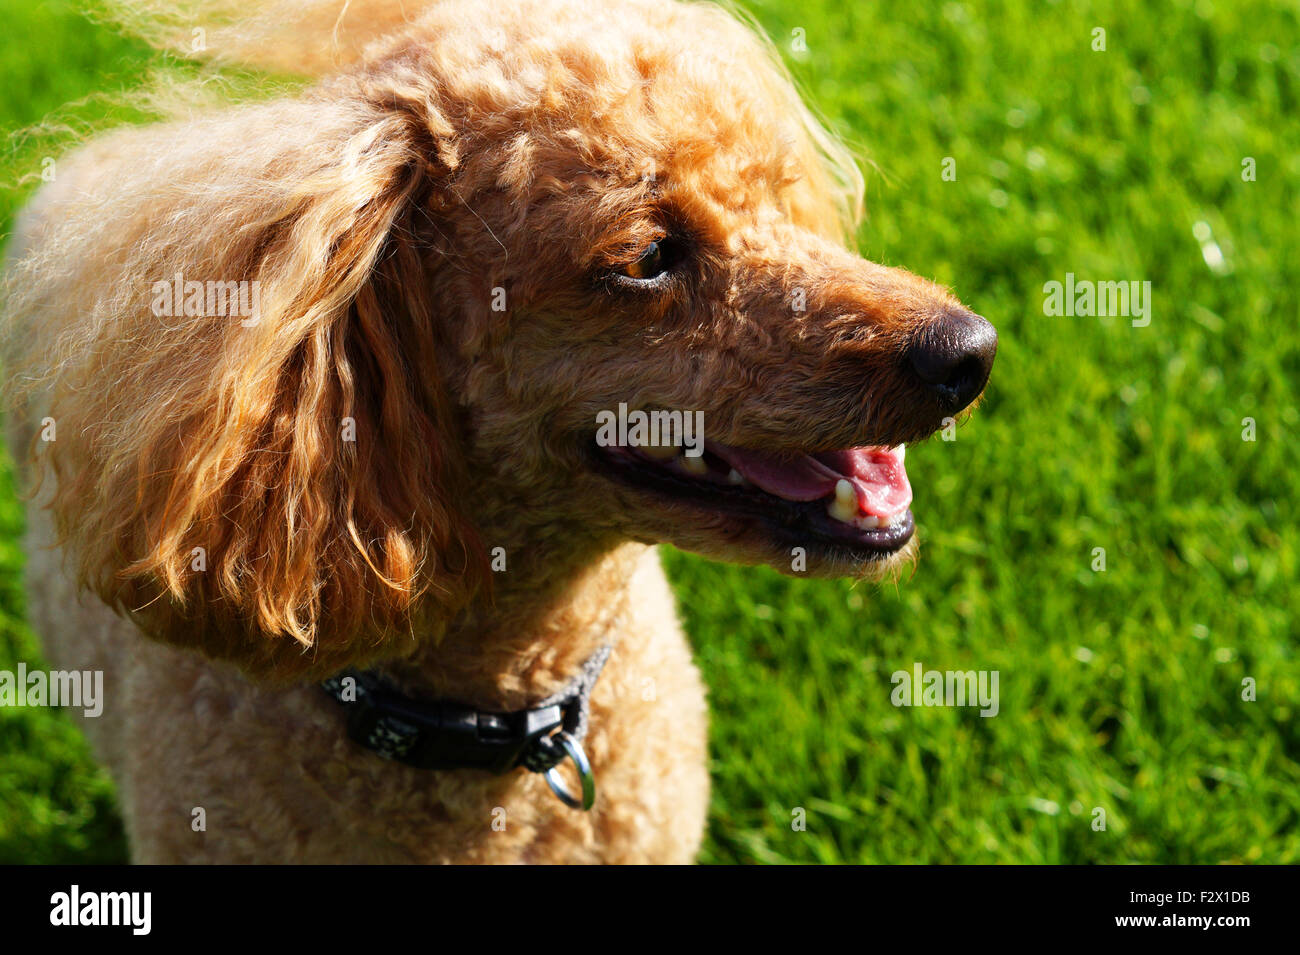 Happy Smiling Fluffy Red Toy Poodle Side View - Stock Image